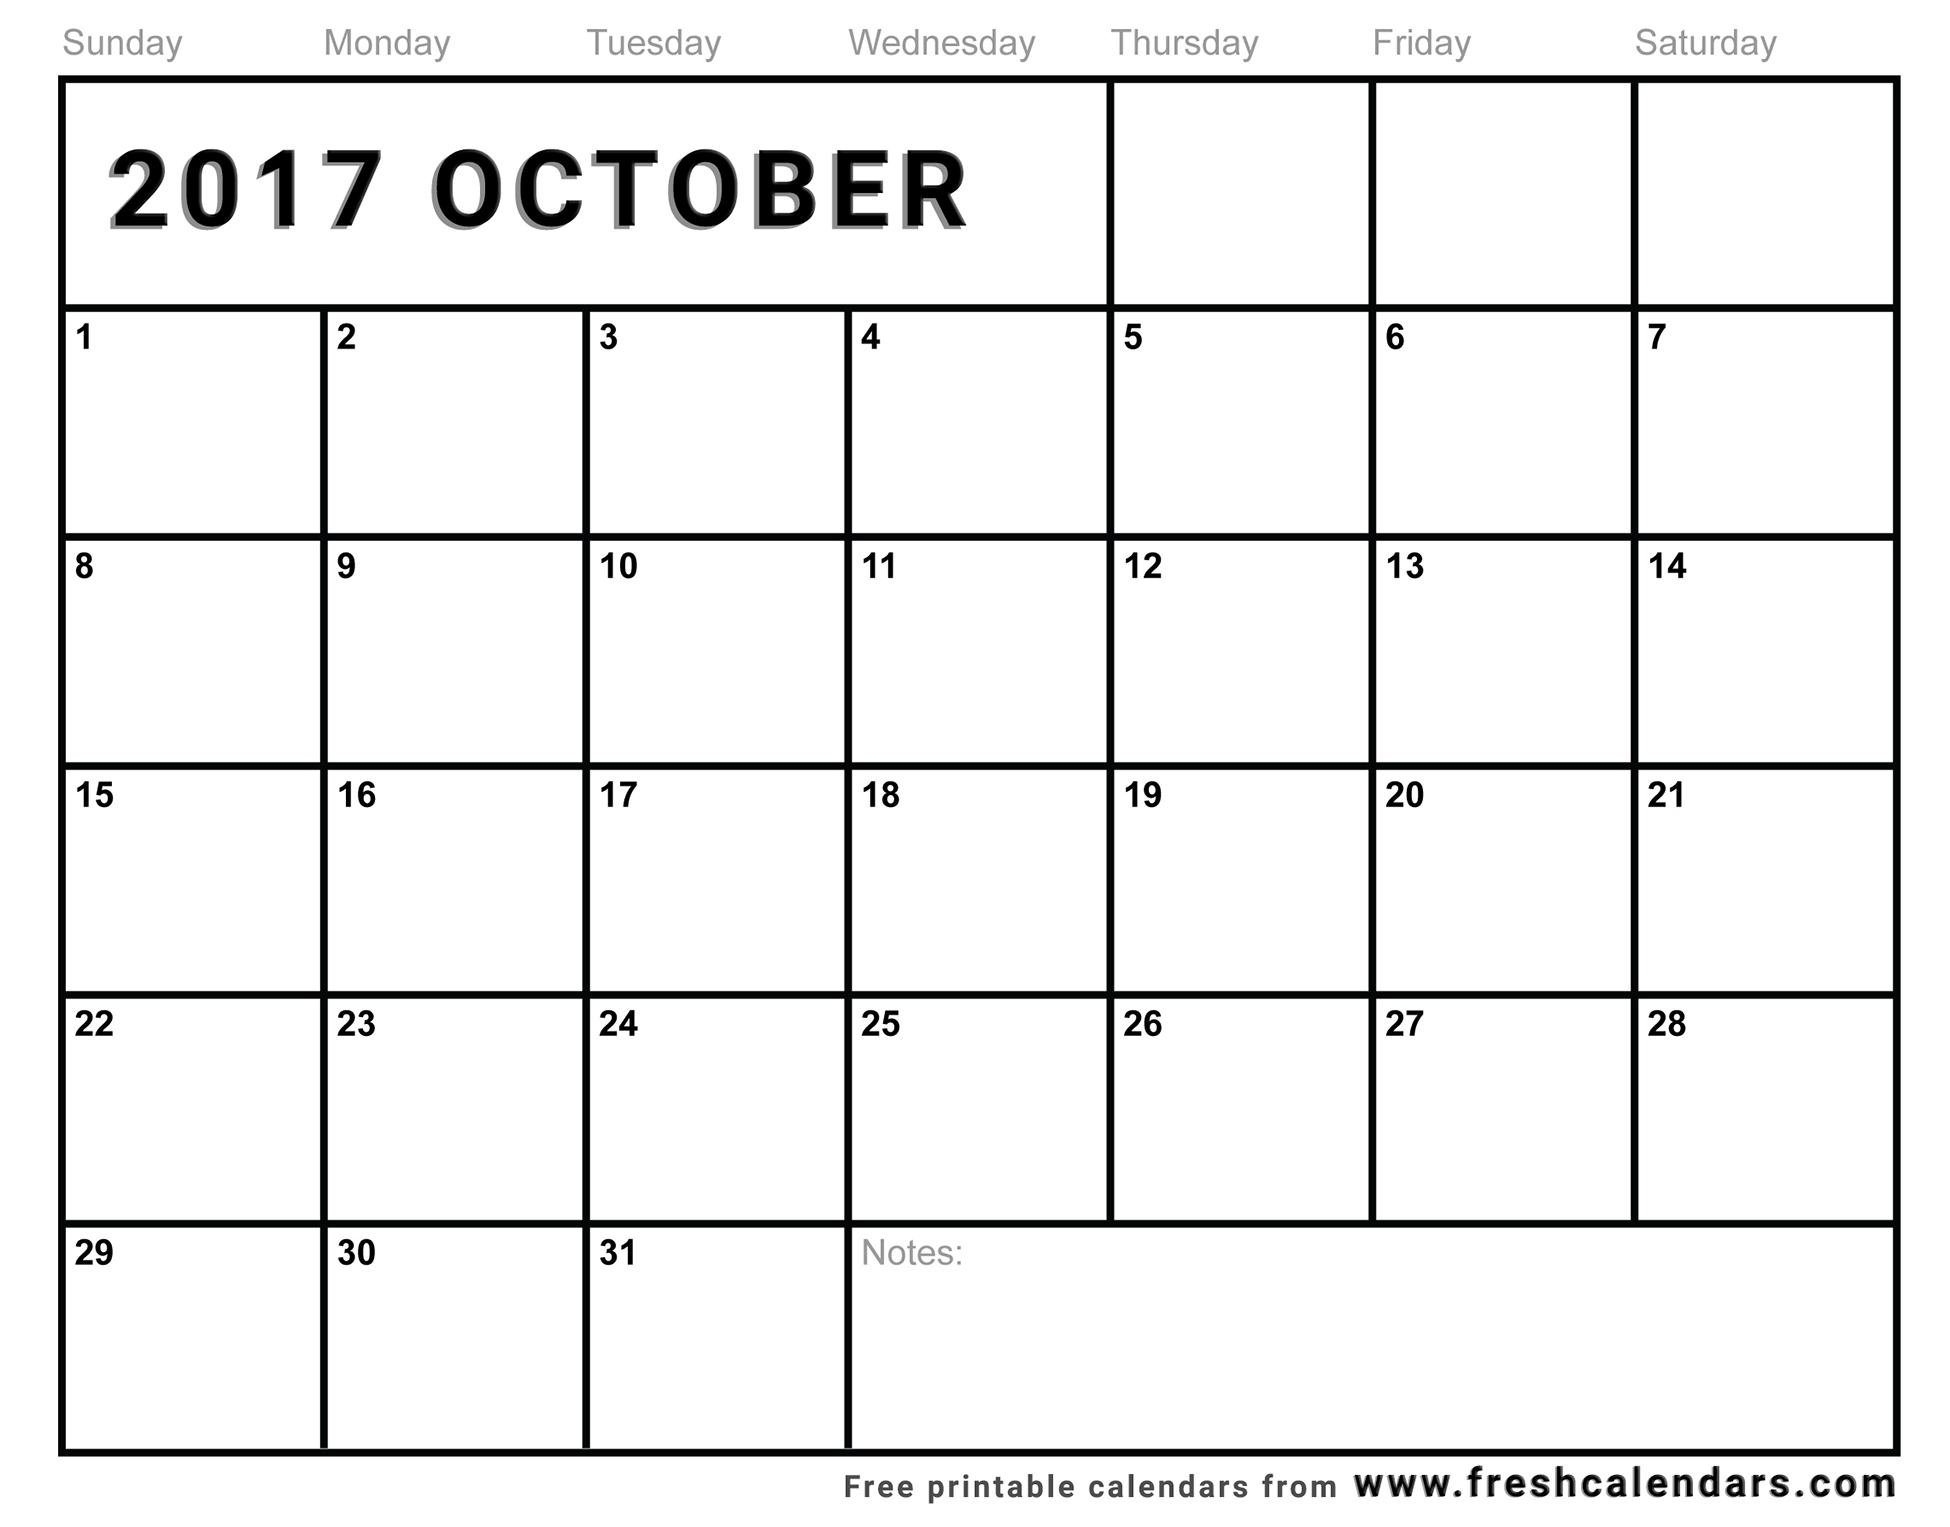 photo relating to Free Printable October Calendars named 25+ Blank Printable Oct 2017 Calendar Free of charge Templates